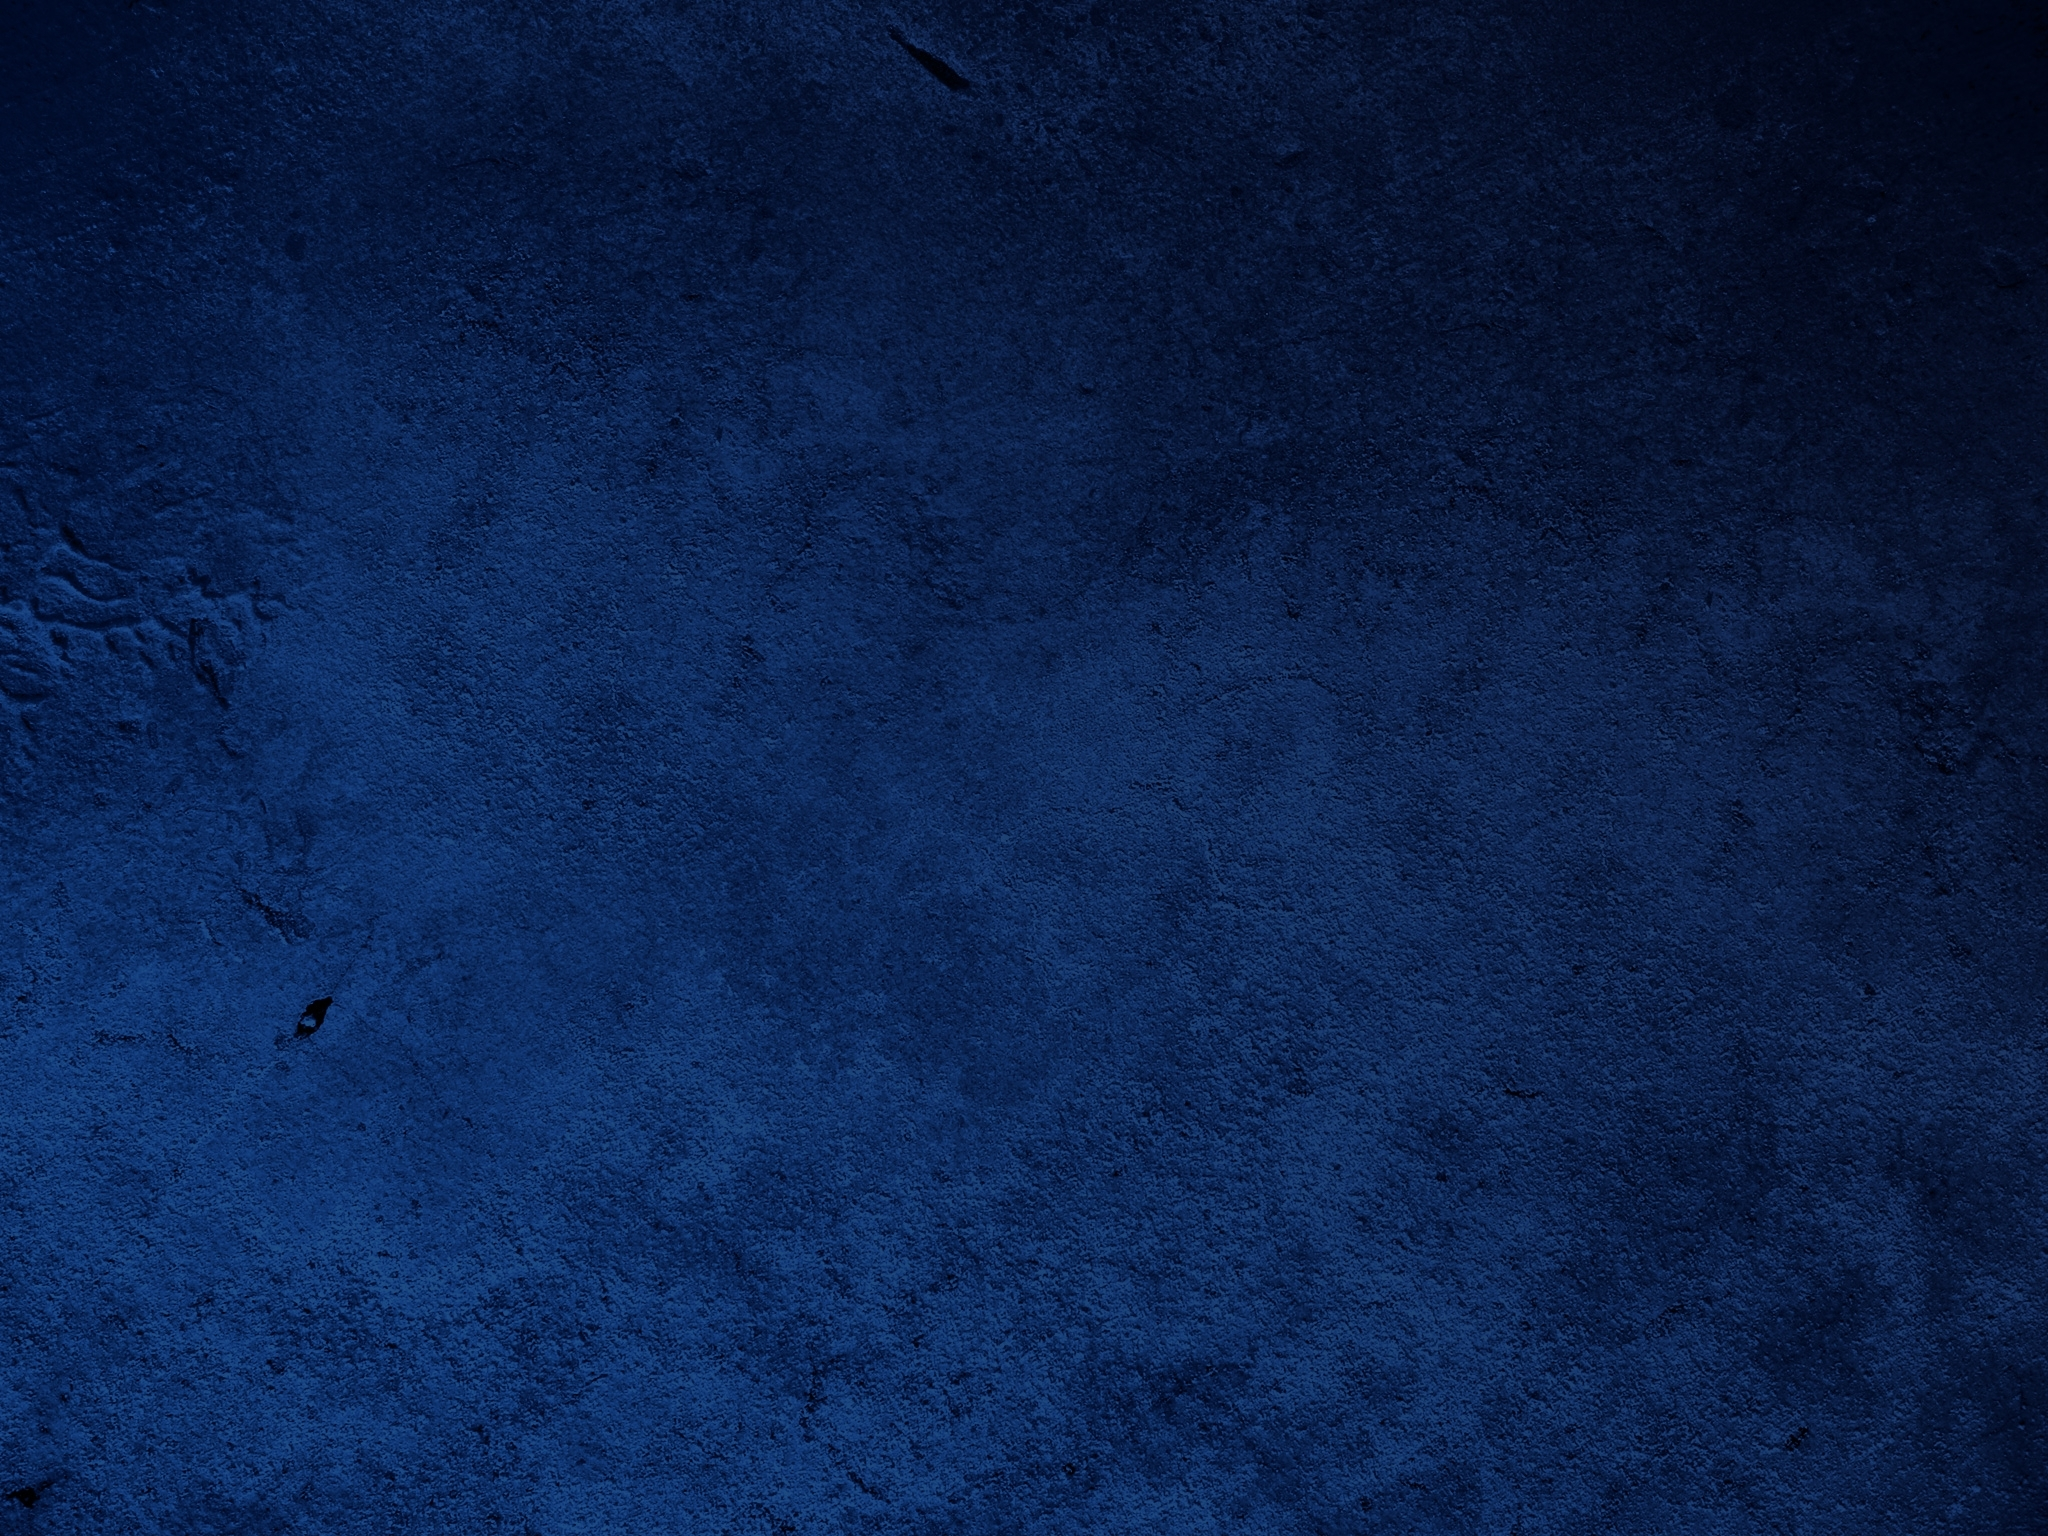 blue textured backgrounds download free - wallpaper.wiki